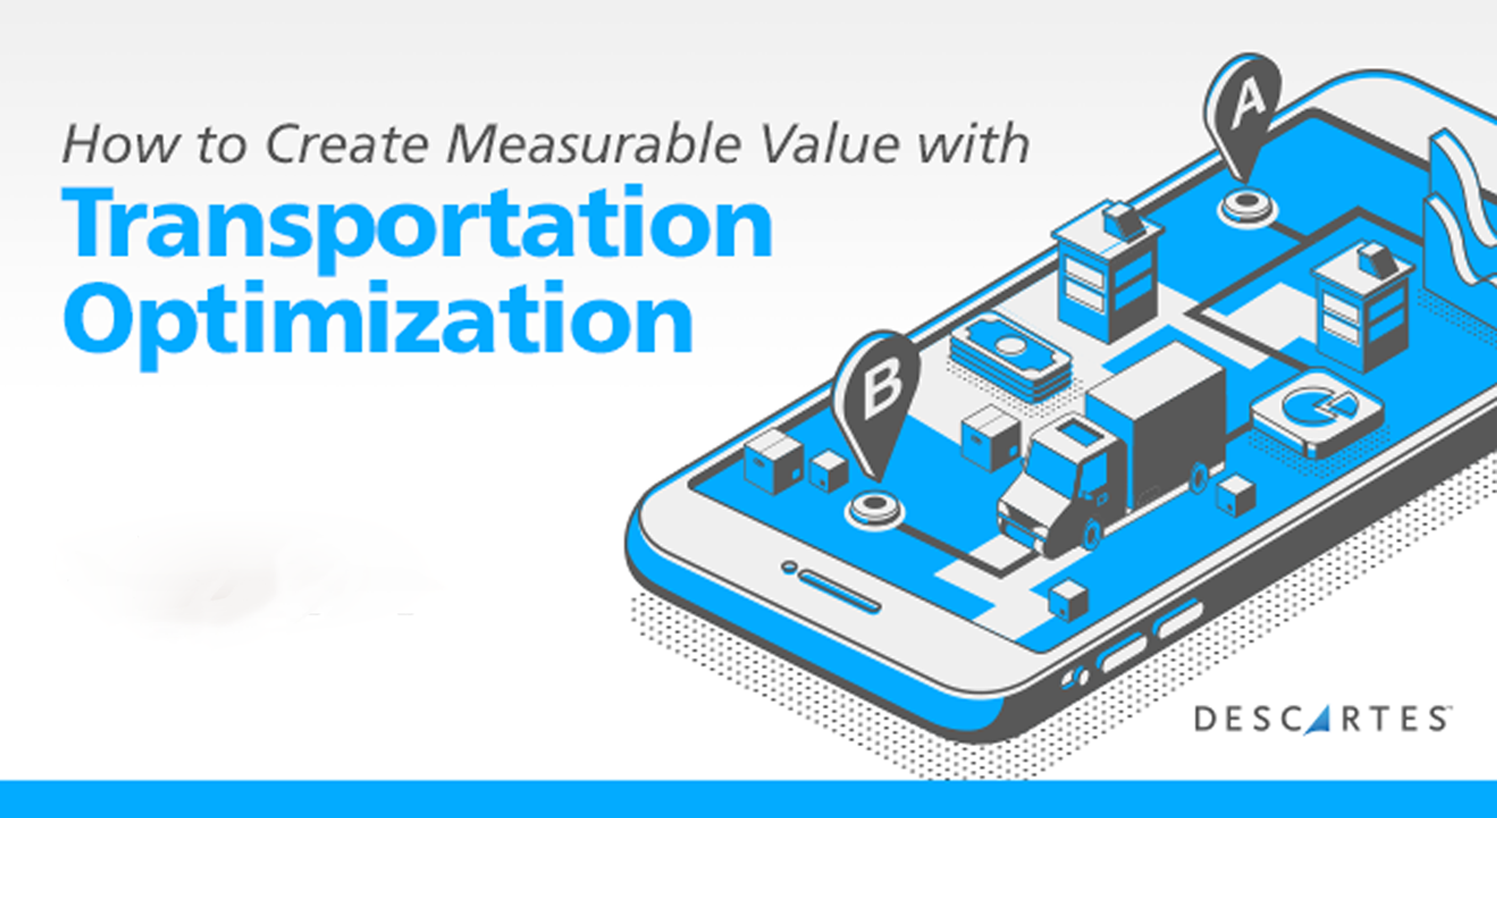 Transportation Optimization Solutions